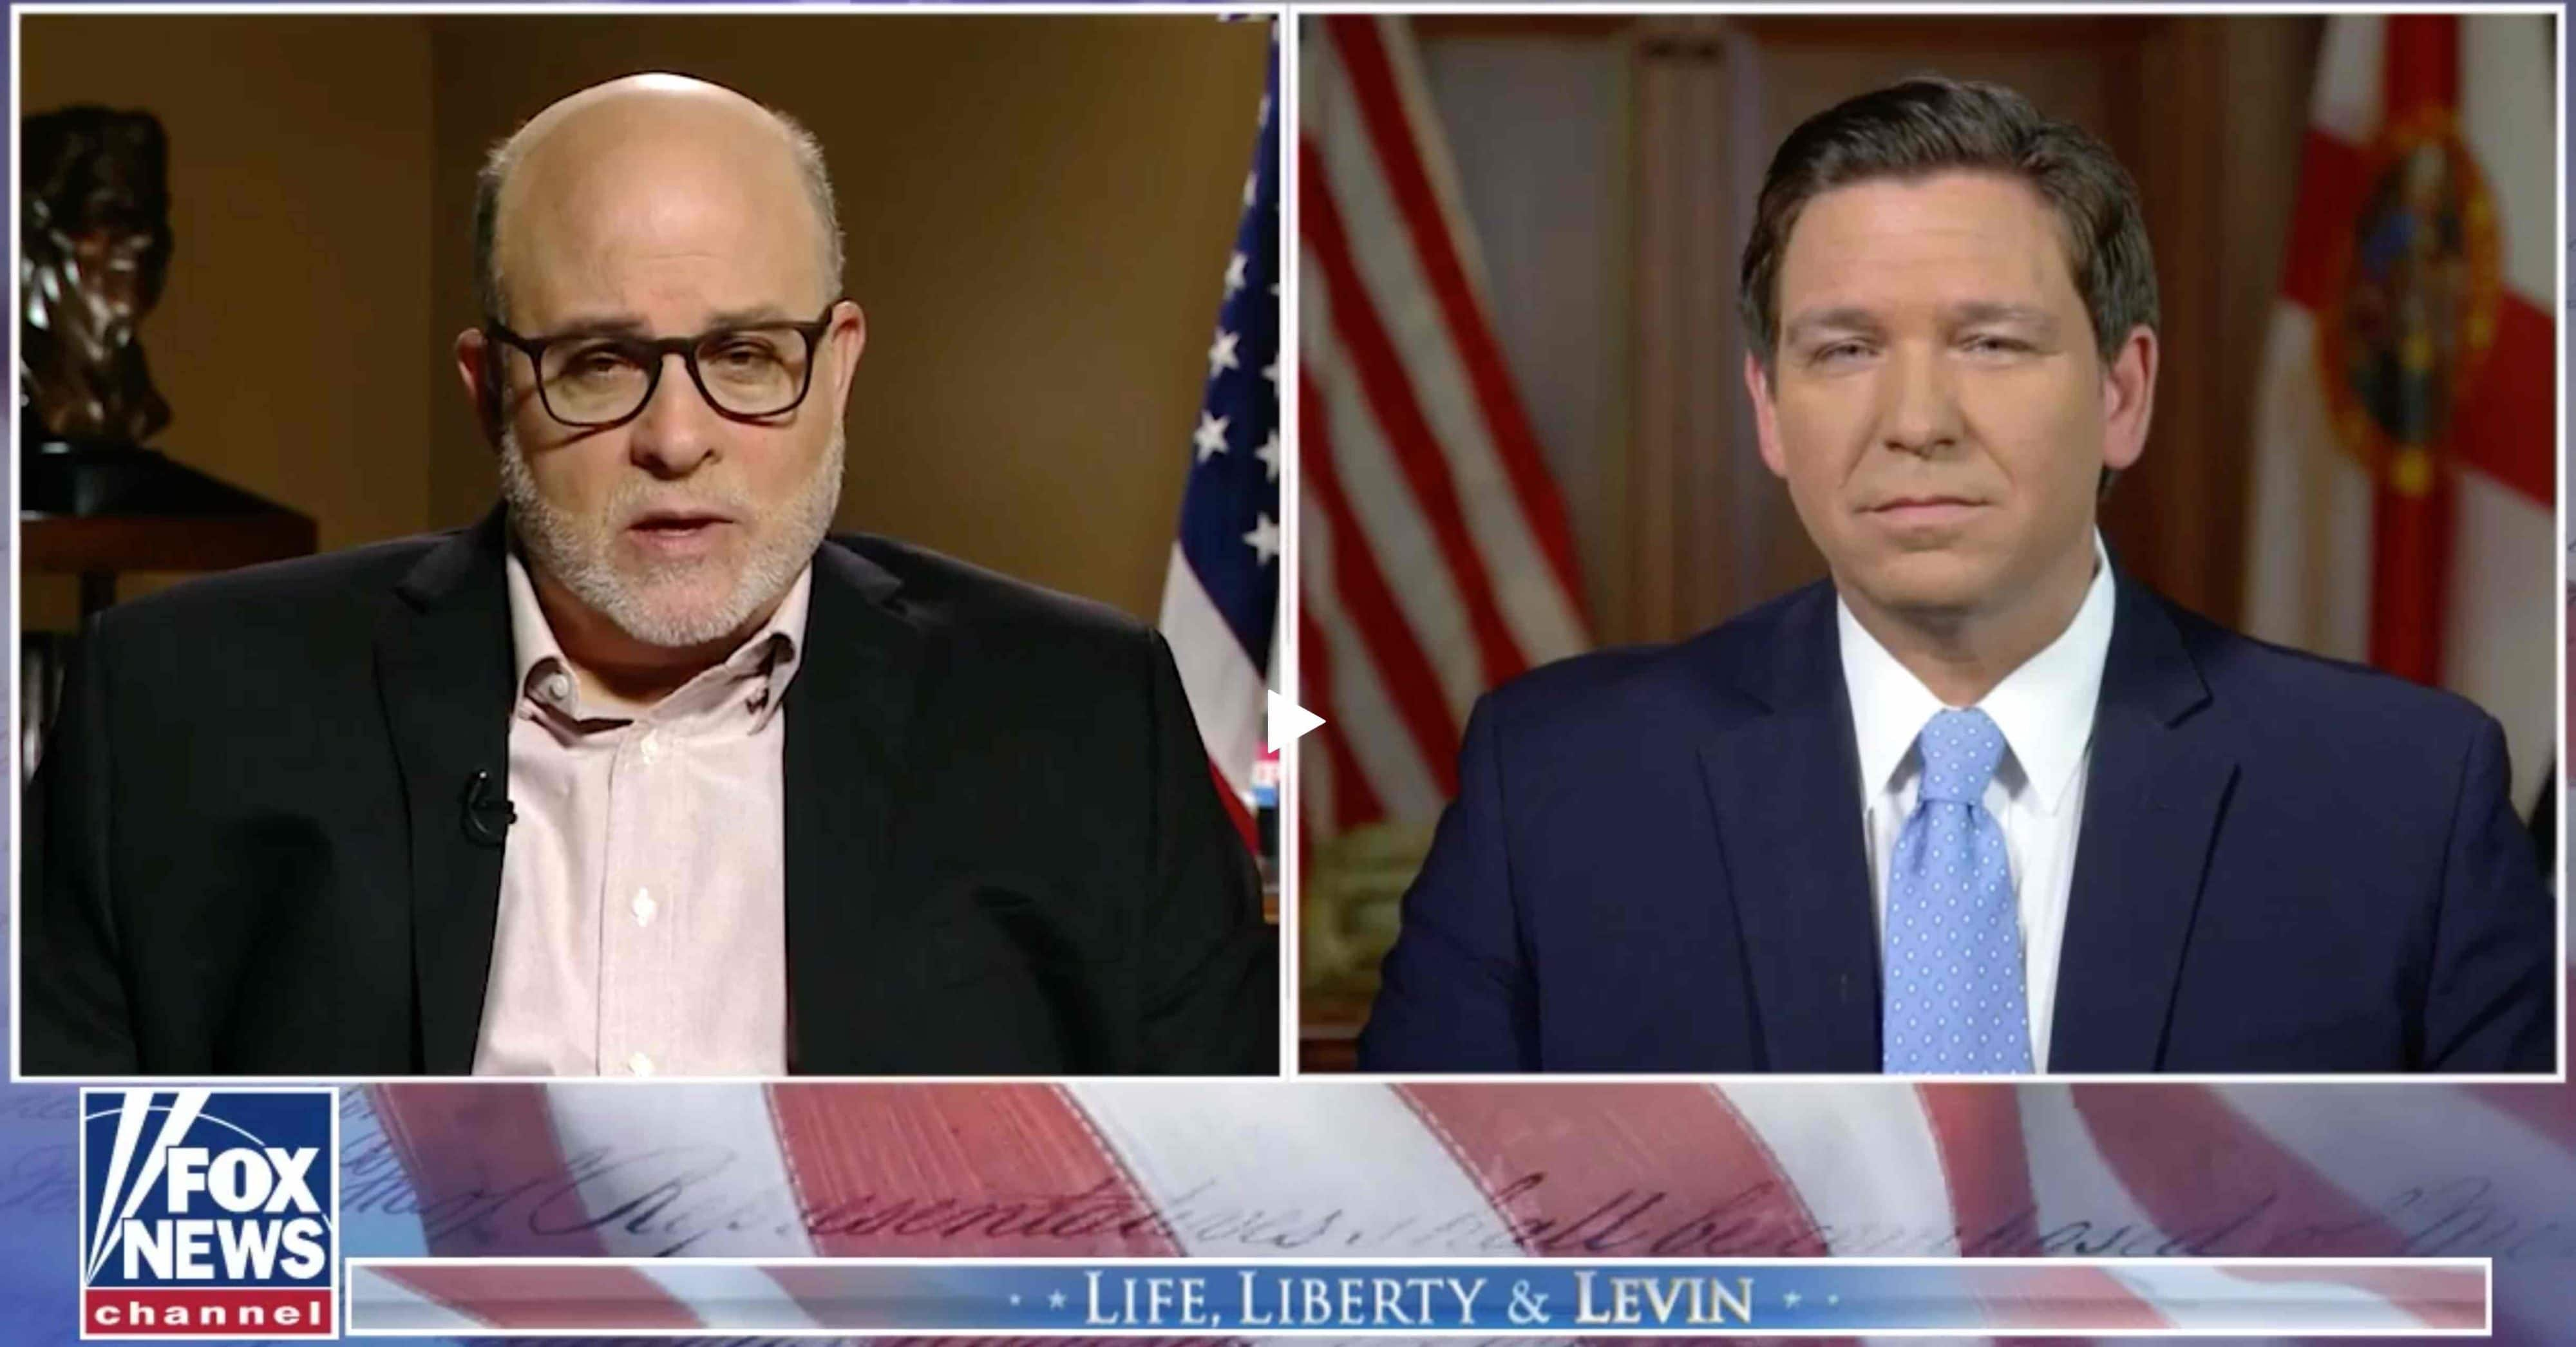 desantis-ron-on-mark-levin-show2-4000x2092.jpg